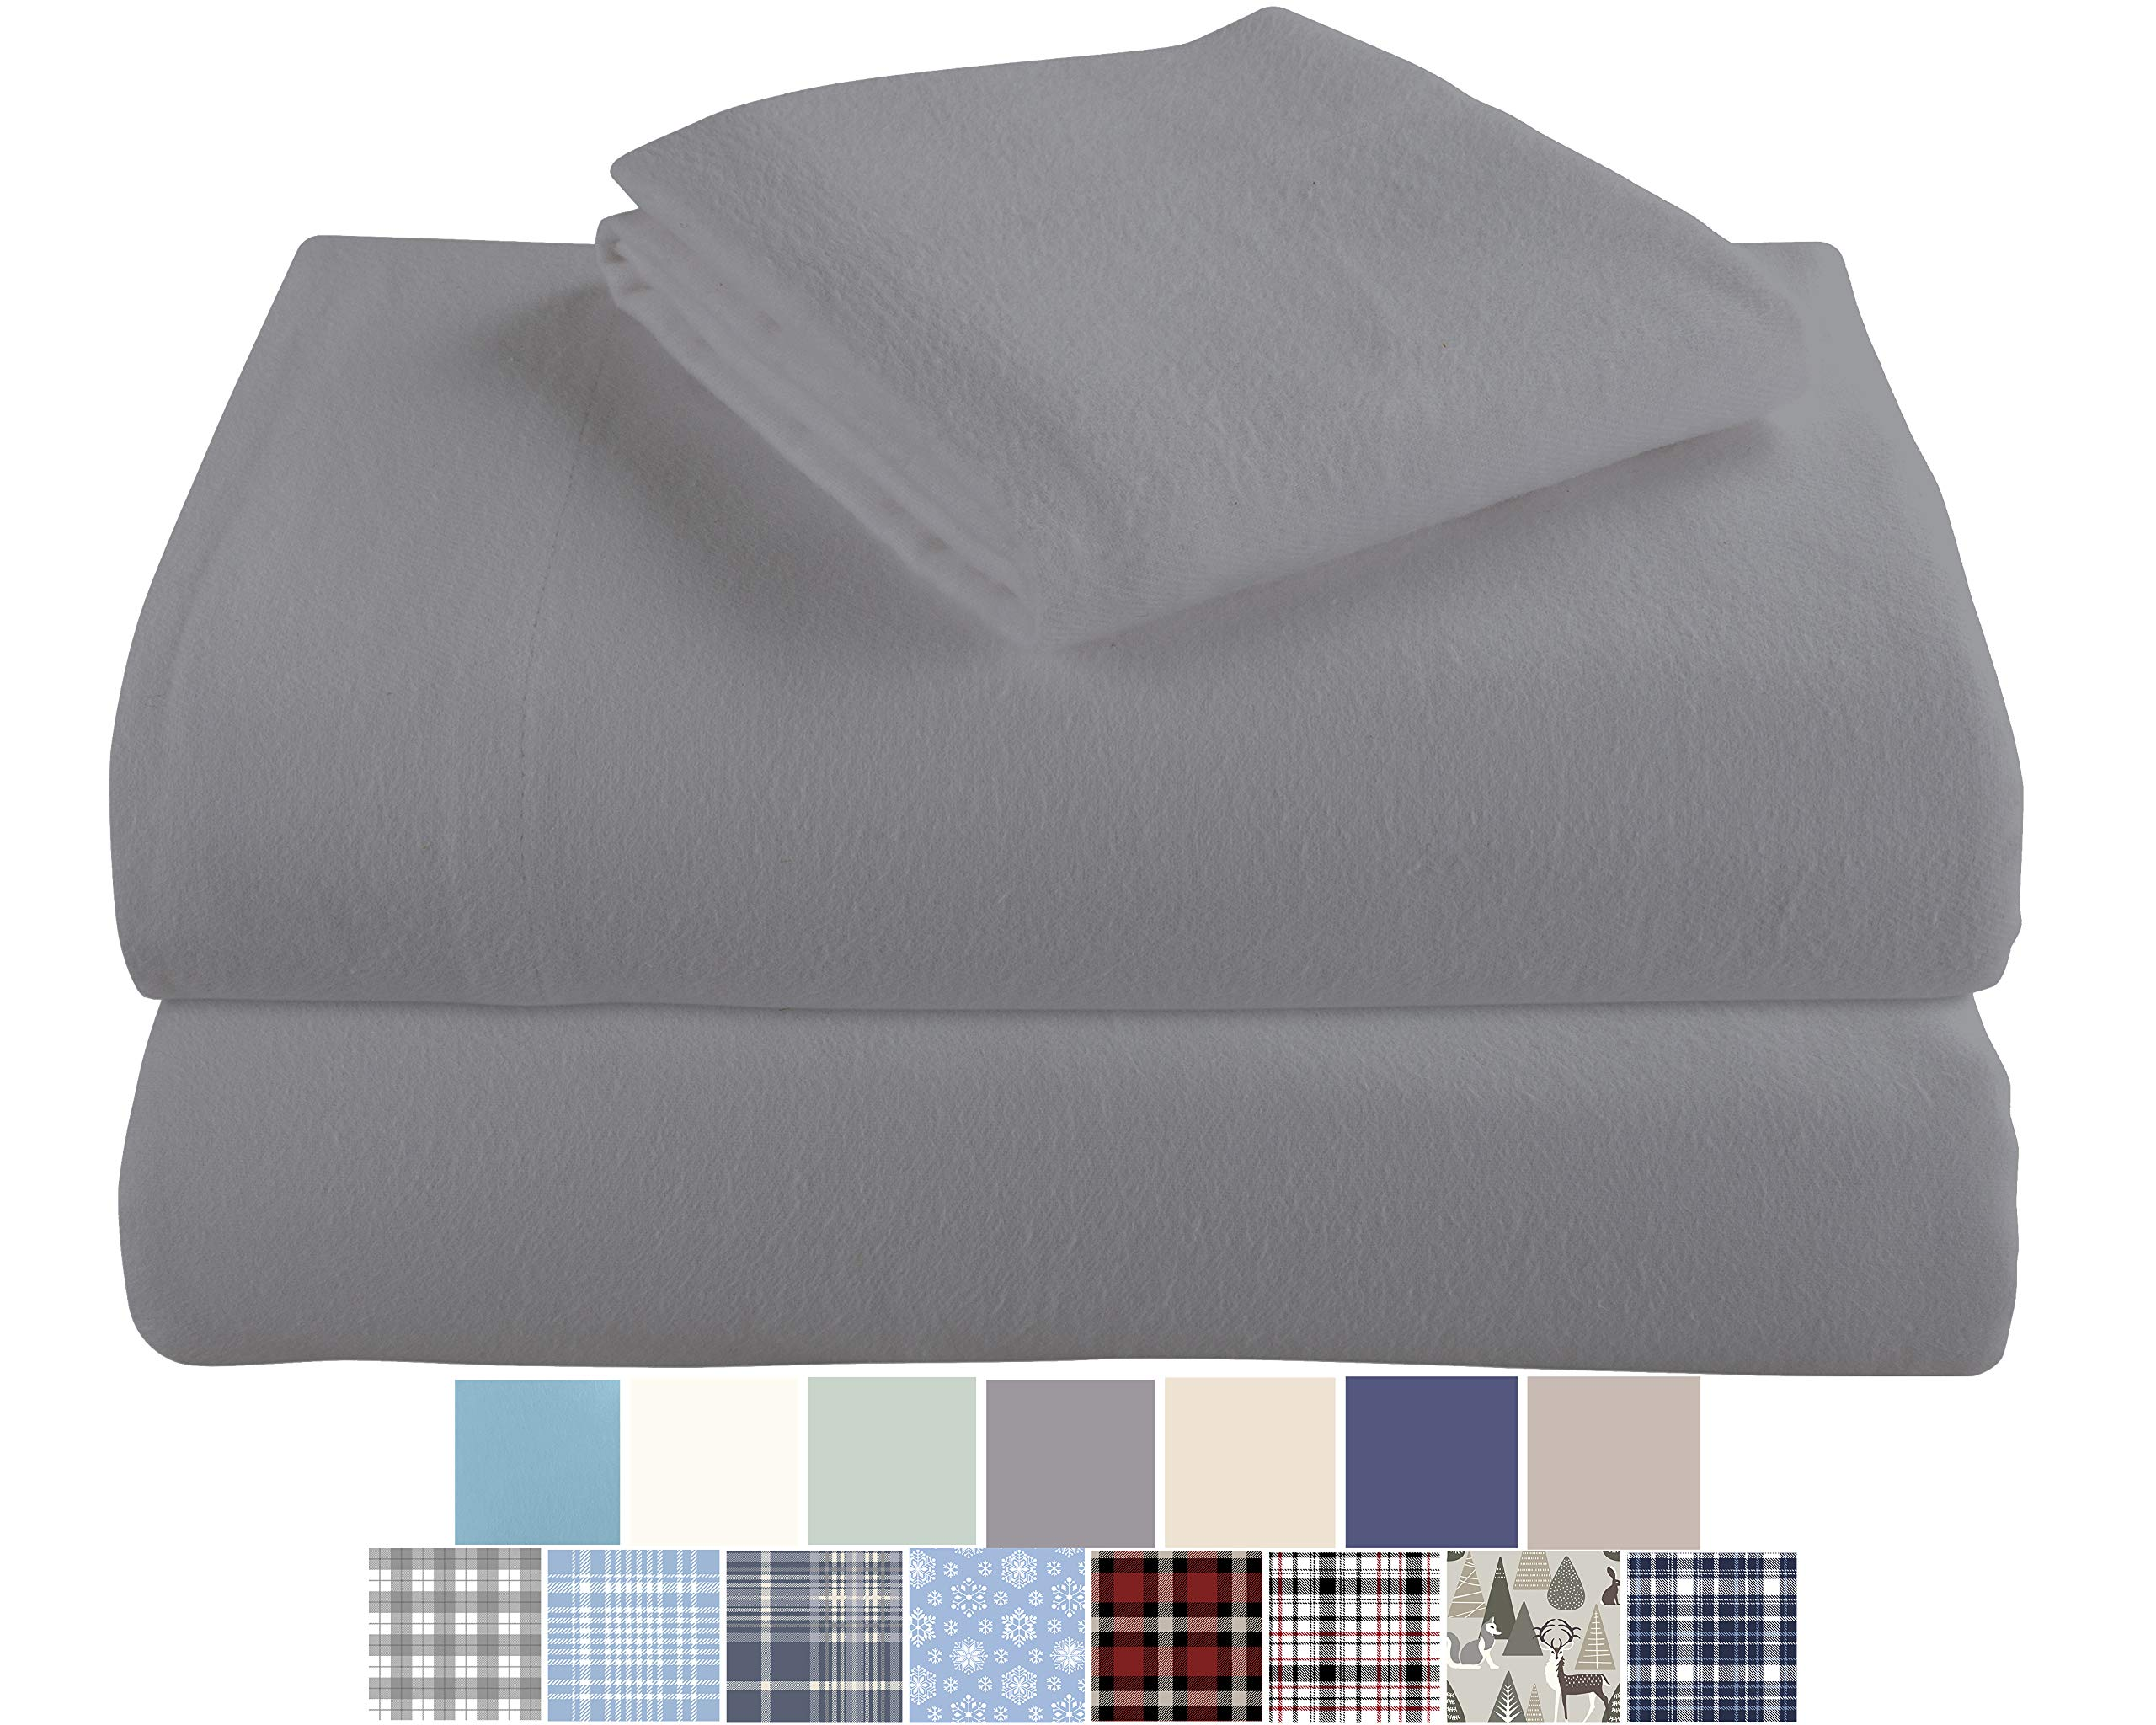 Cotton Turkish Flannel Sheets By Morgan Home Fashions 100 Brushed Cotton For Supreme Comfort Deep Pockets Warm And Cozy Great For All Seasons Grey Queen Amazon Com Au Home